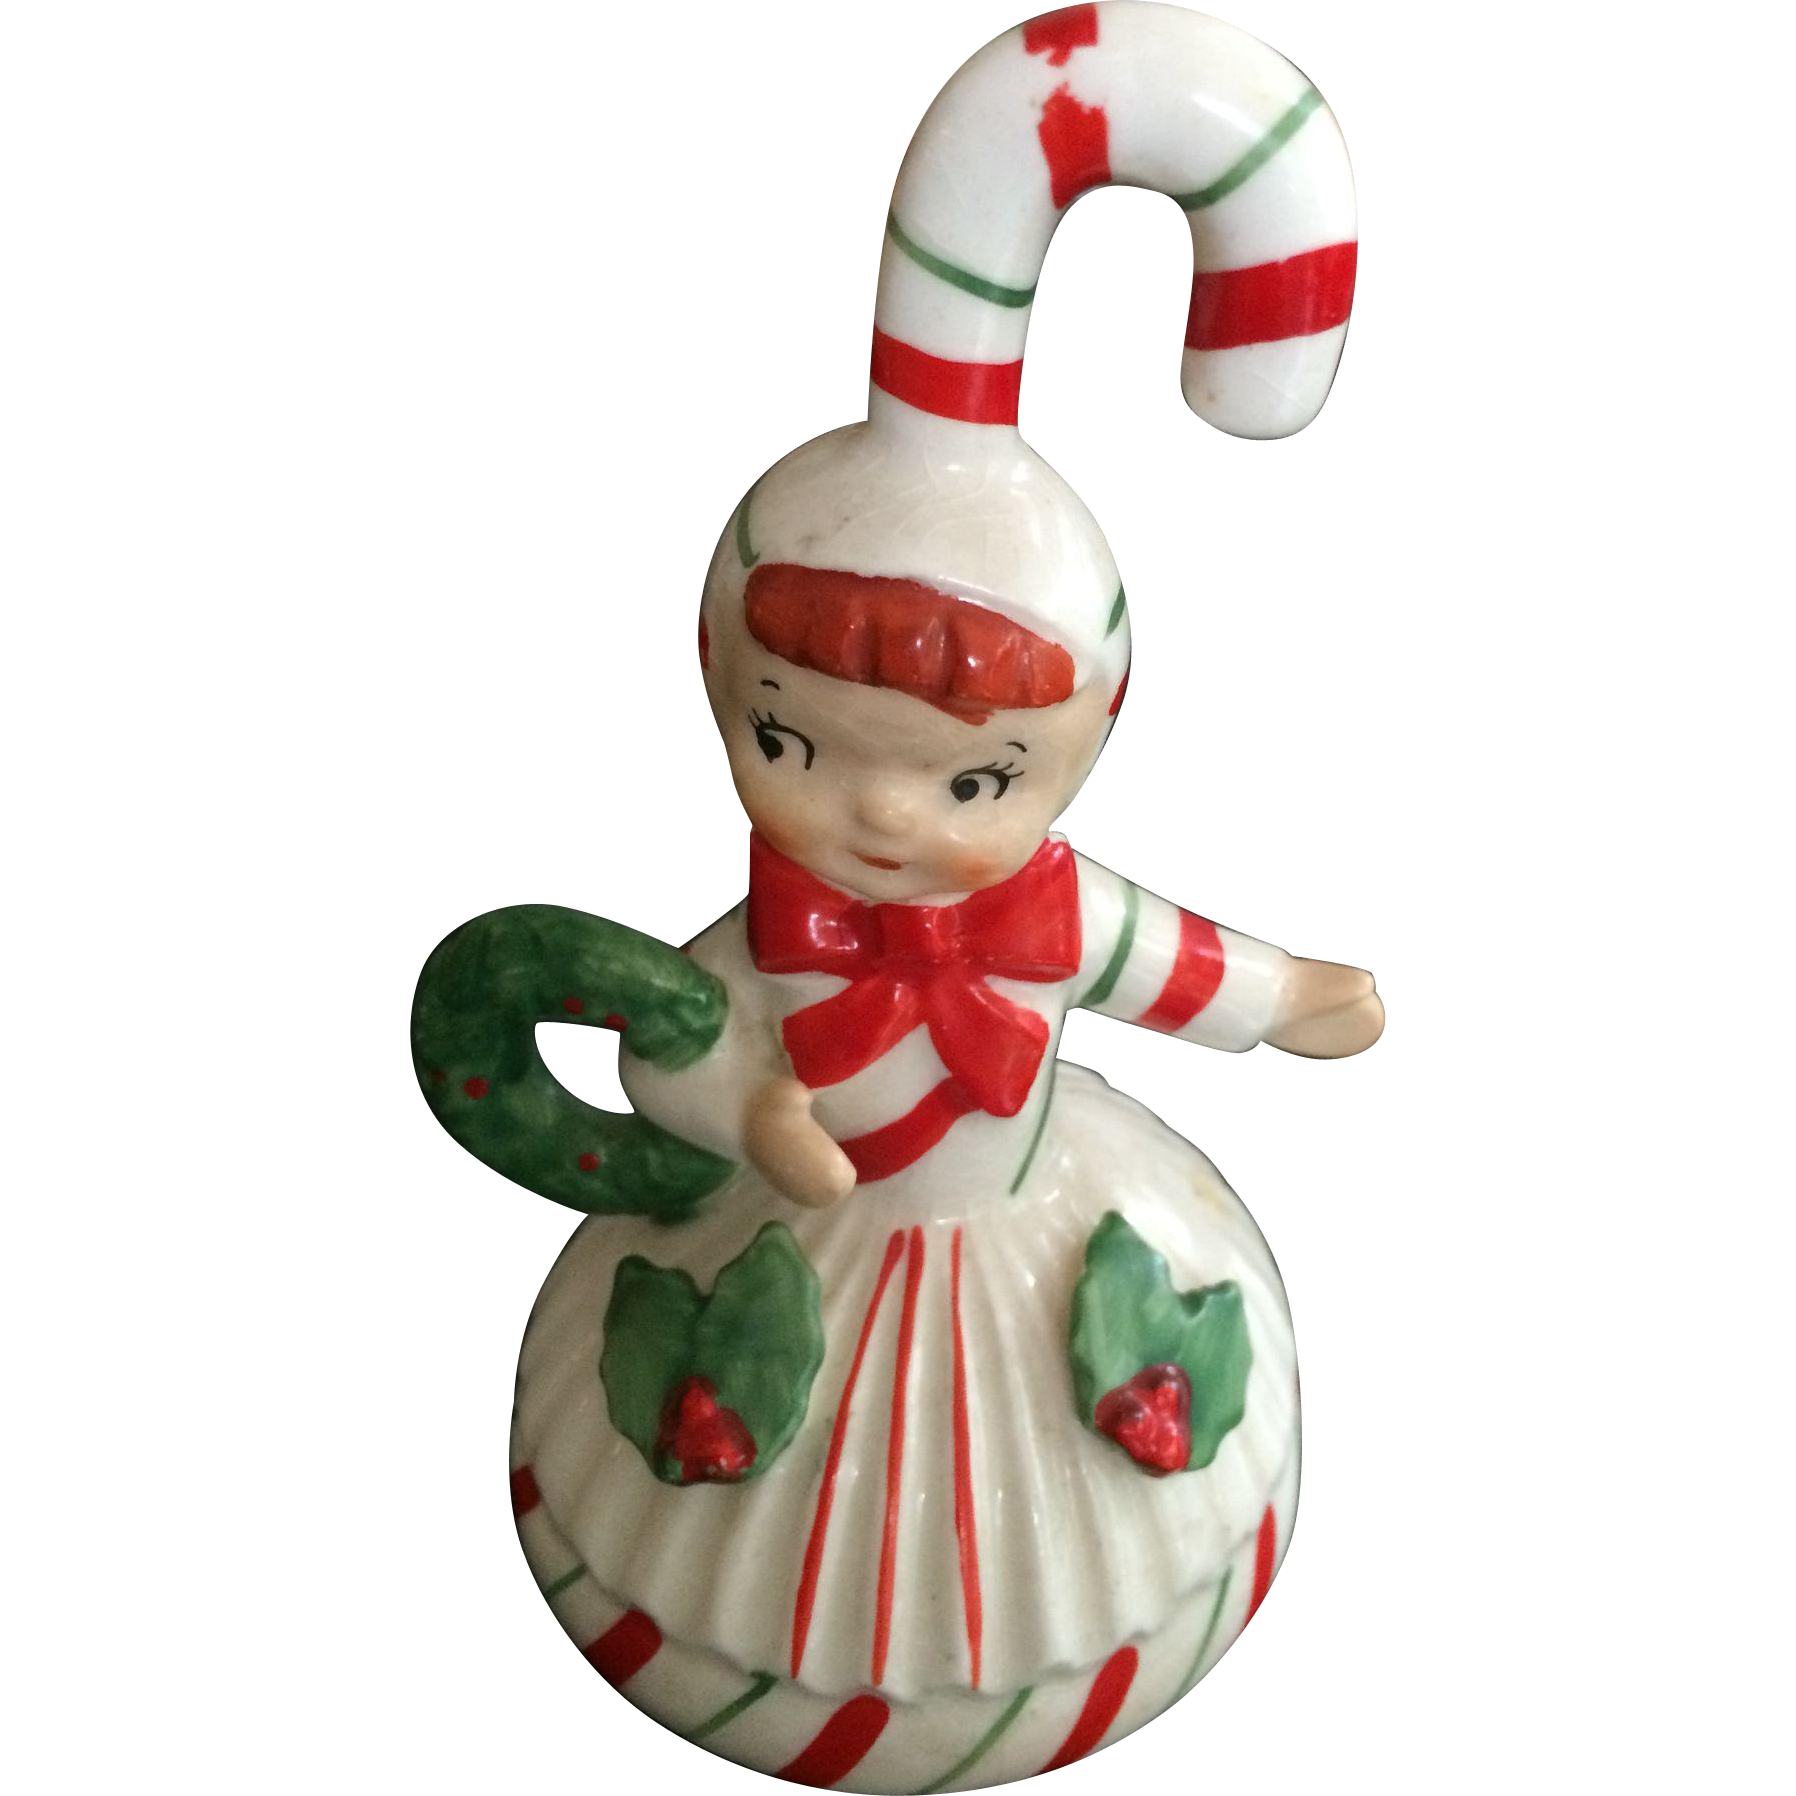 Lefton christmas ornament and bell from rubylane sold on ruby lane